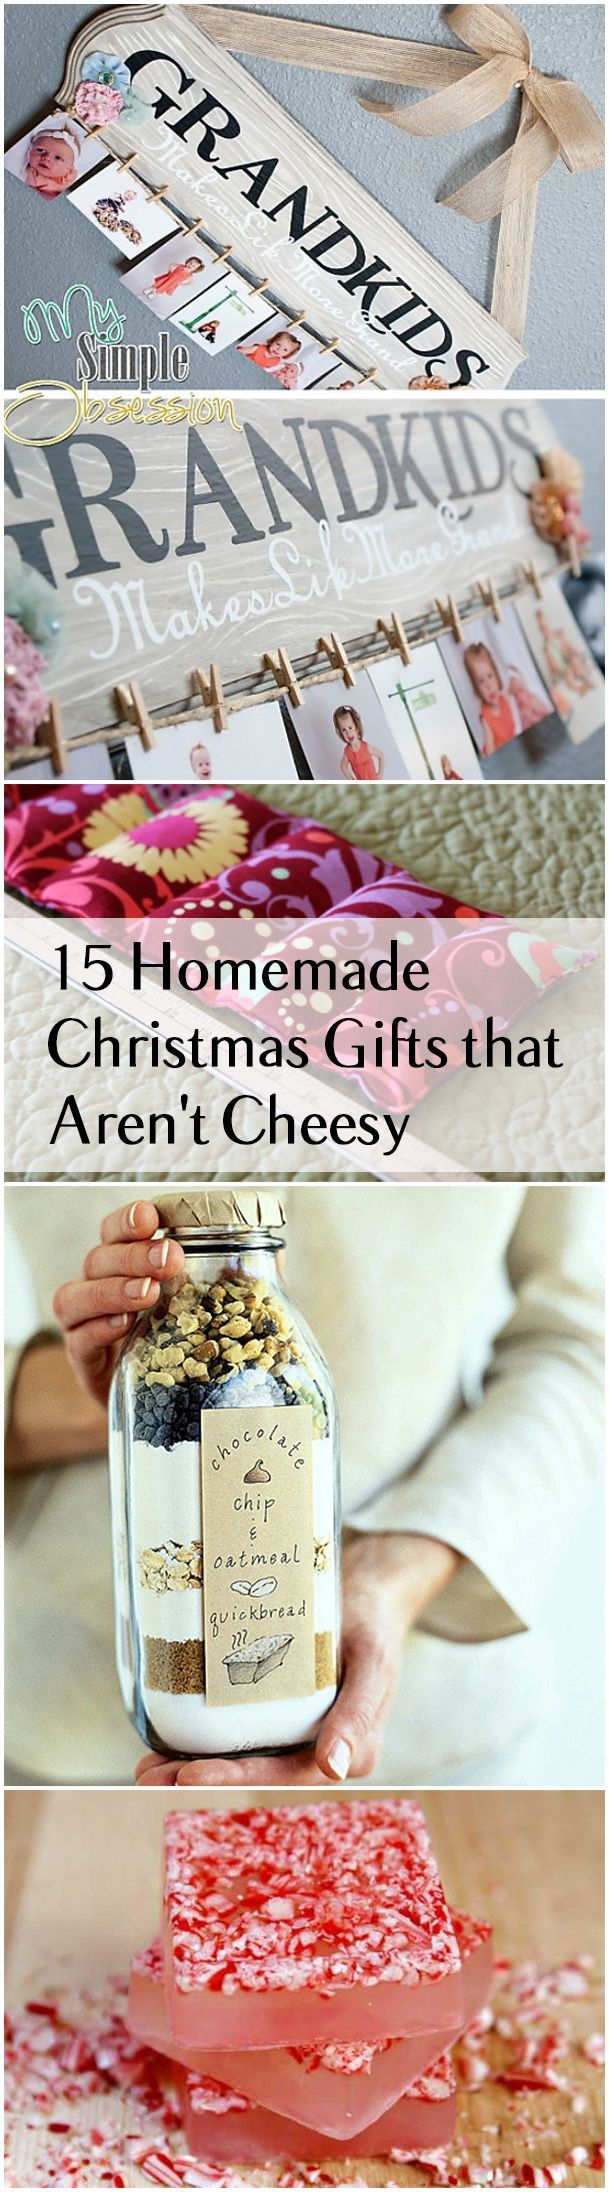 15 homemade christmas gifts that arent cheesy casero mam y 15 homemade christmas gifts that arent cheesy solutioingenieria Choice Image